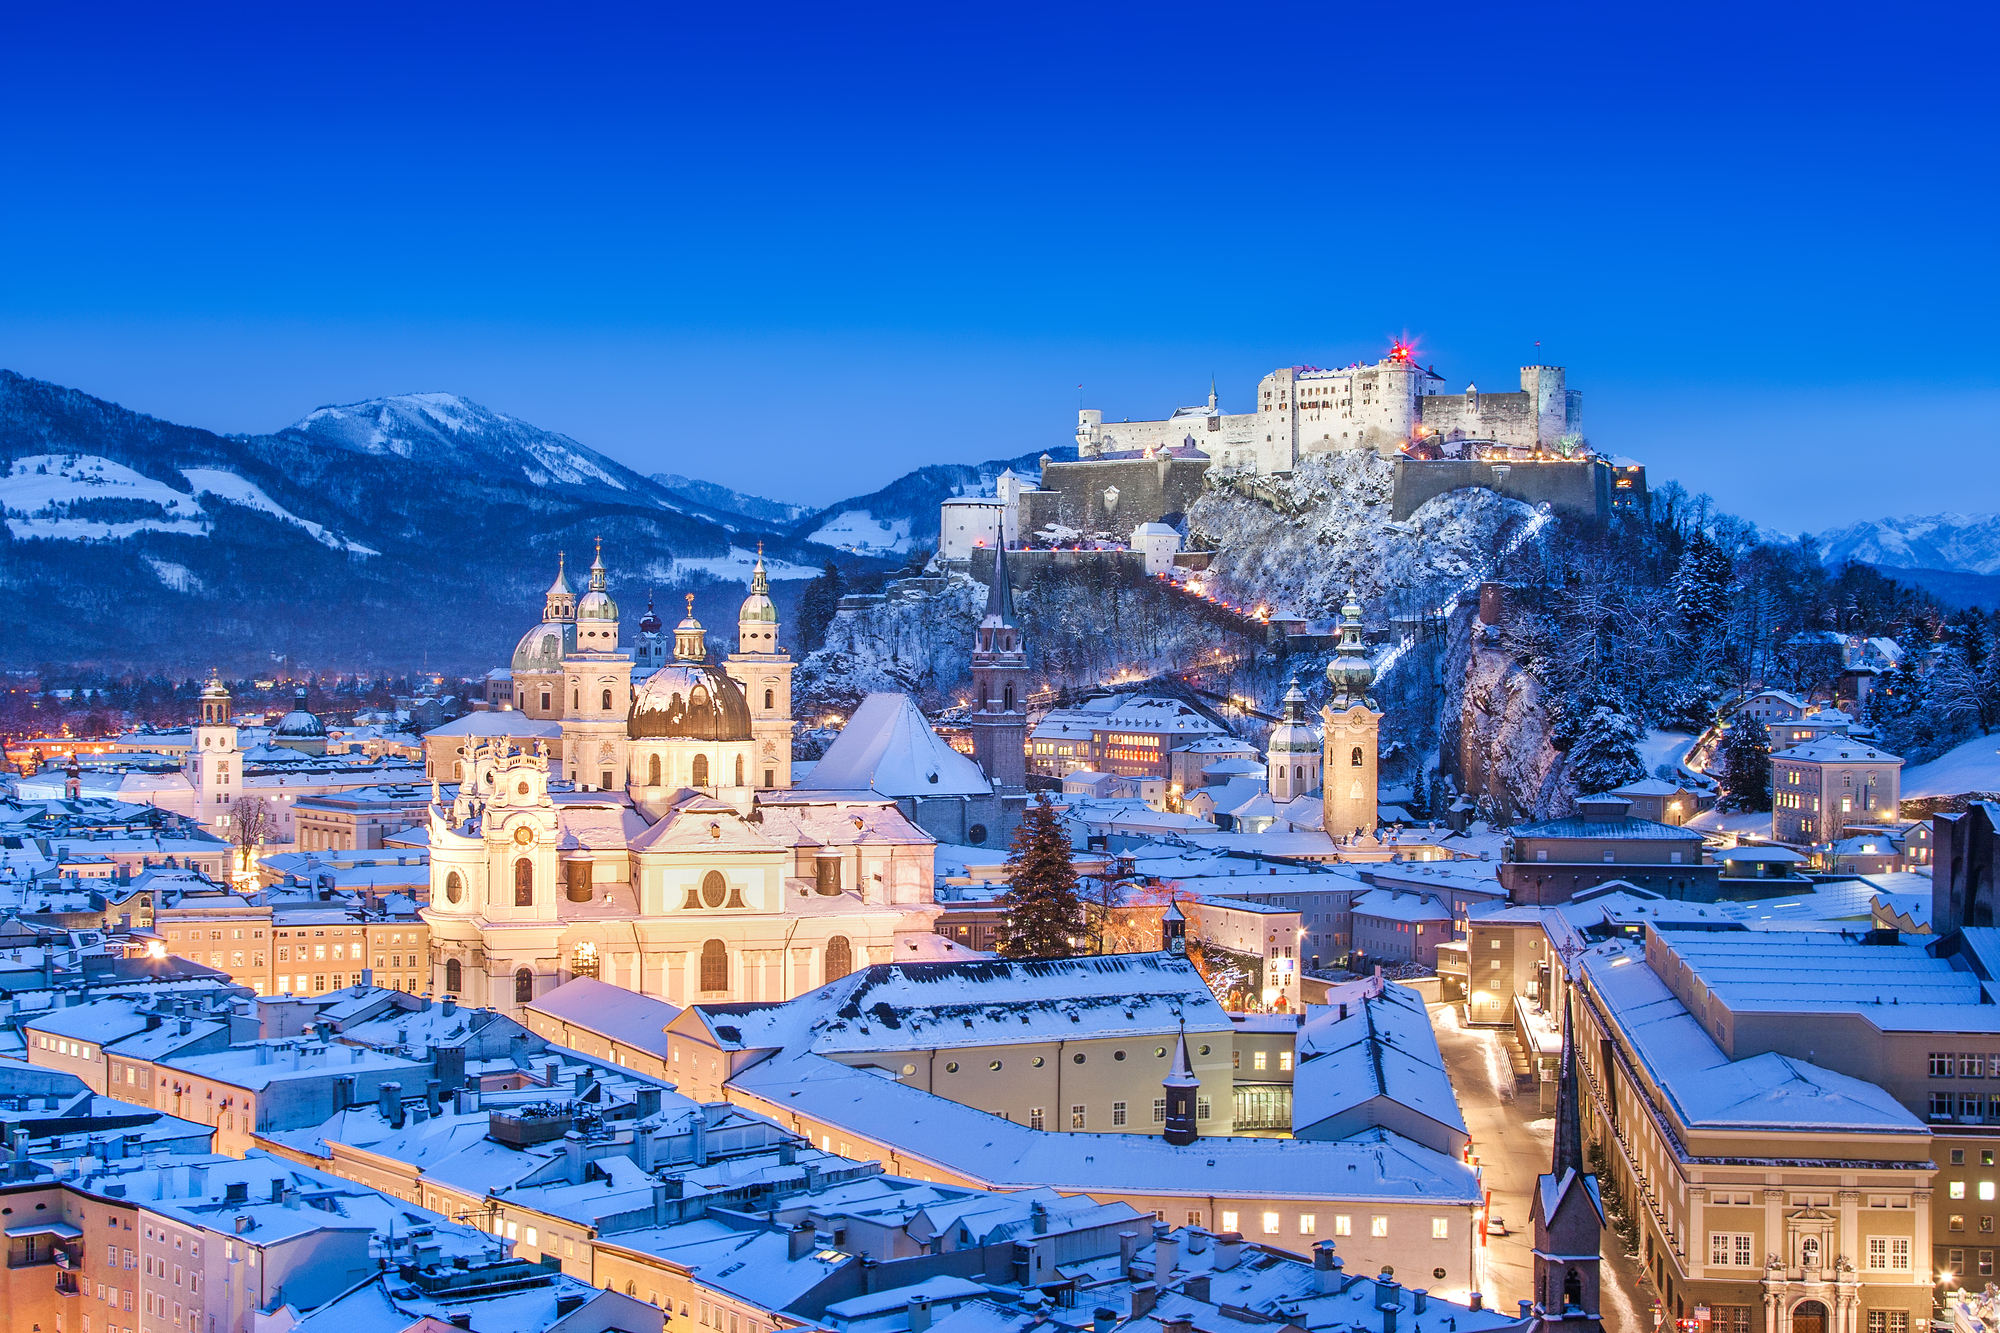 stock photo of the historic city of Salzburg